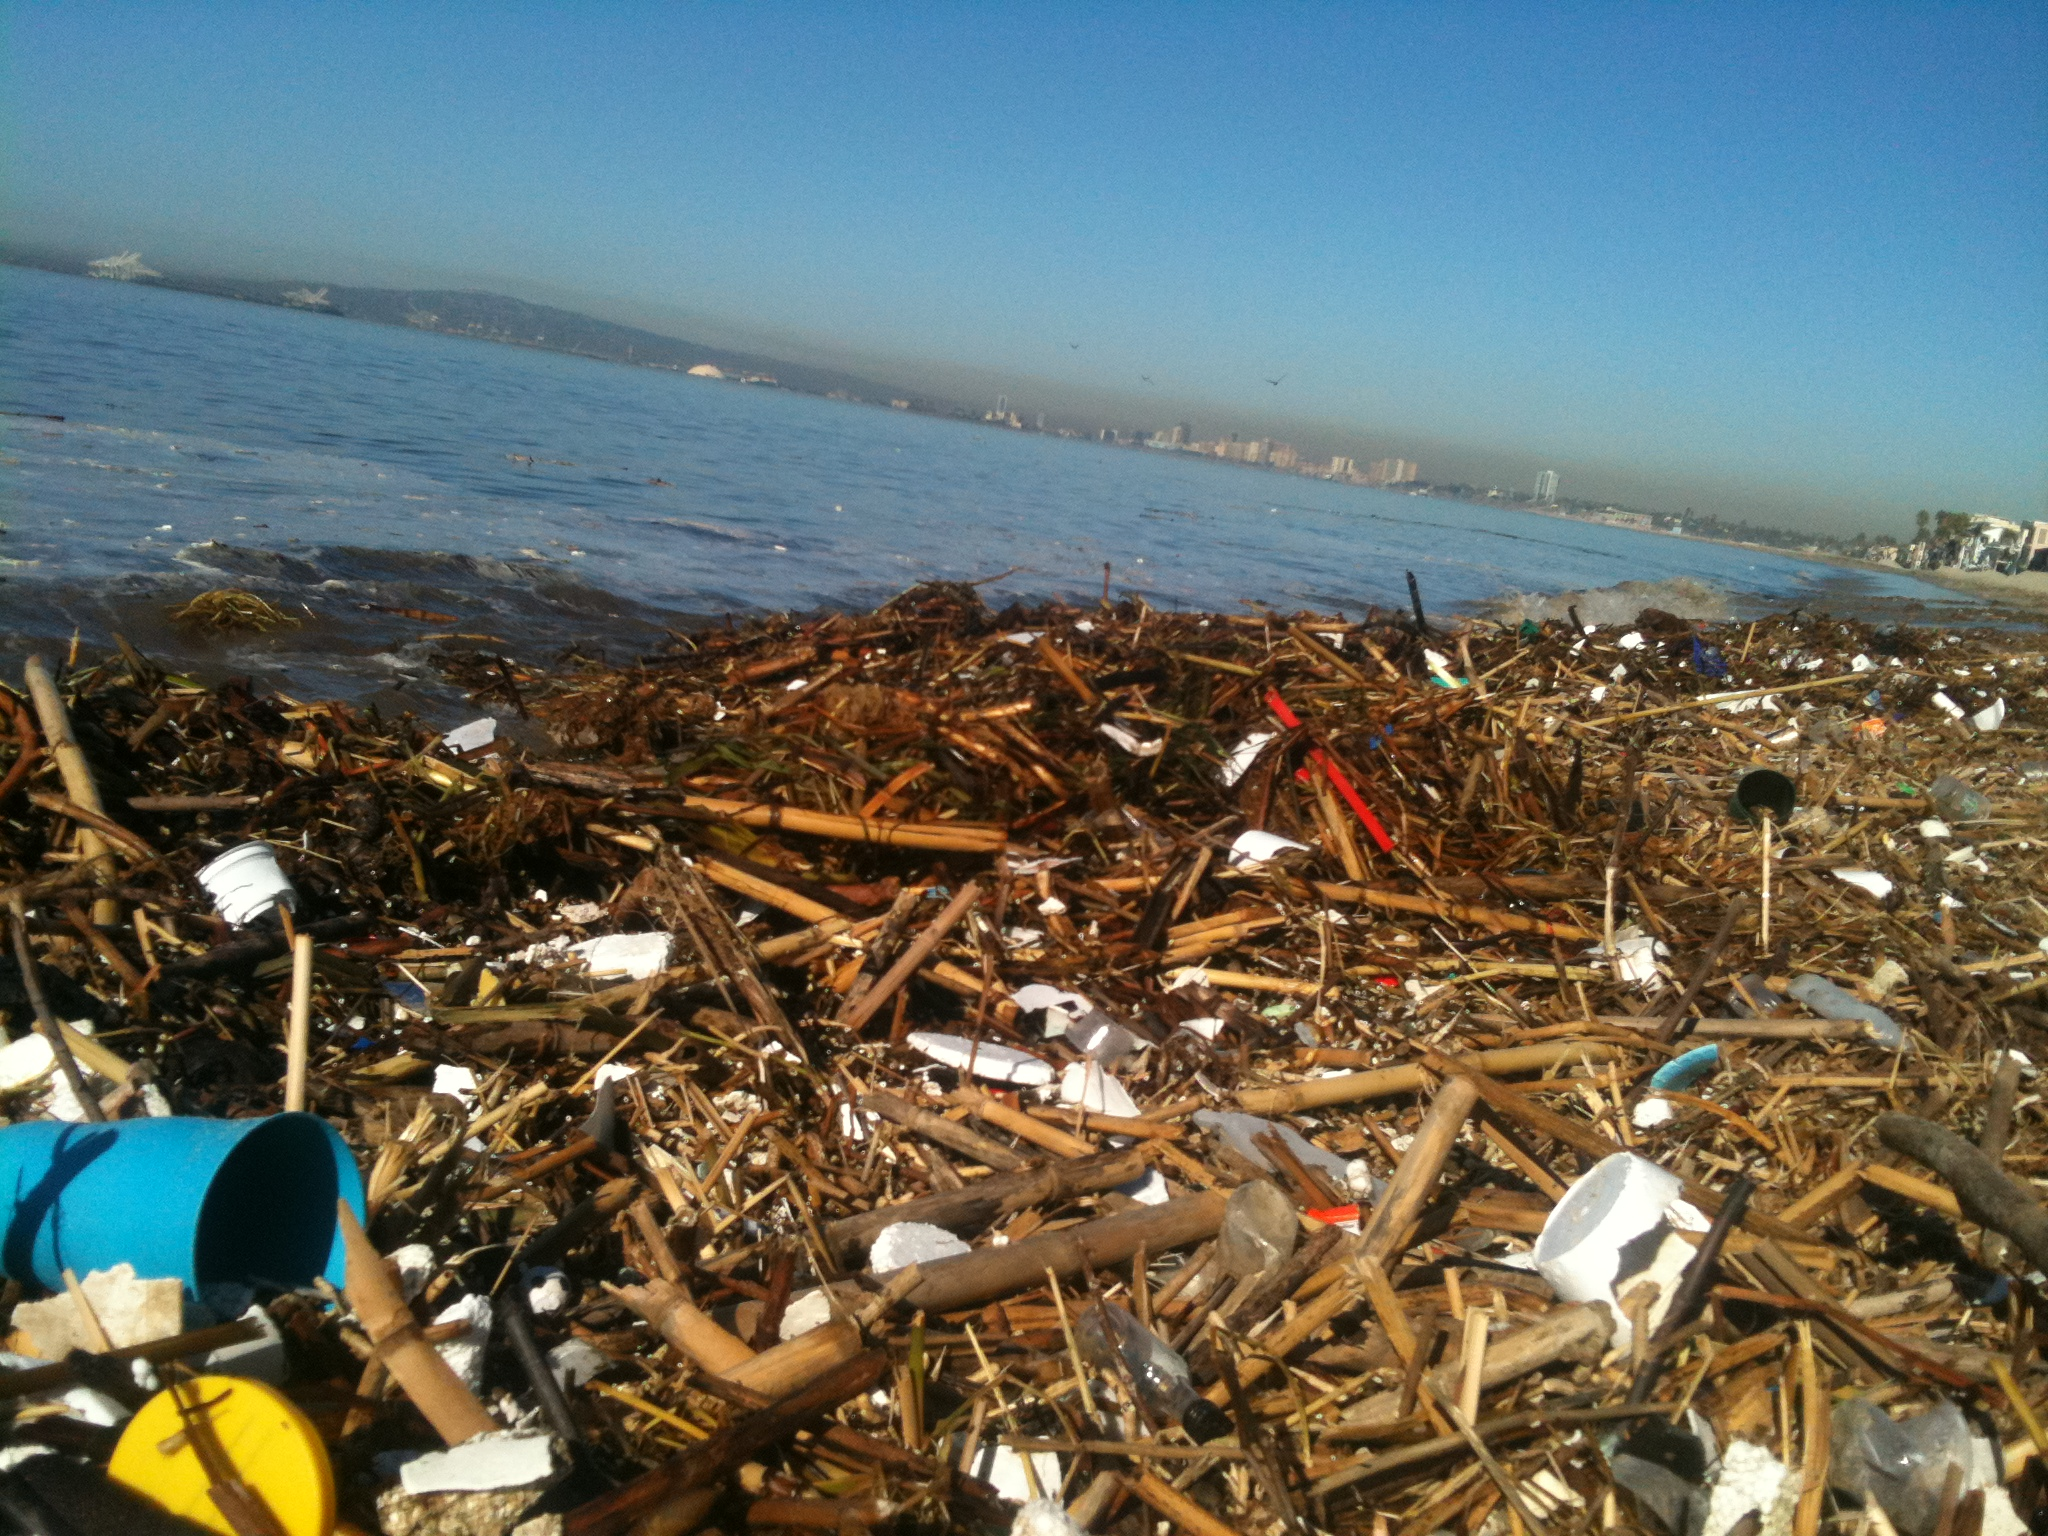 the issue of shoreline pollution